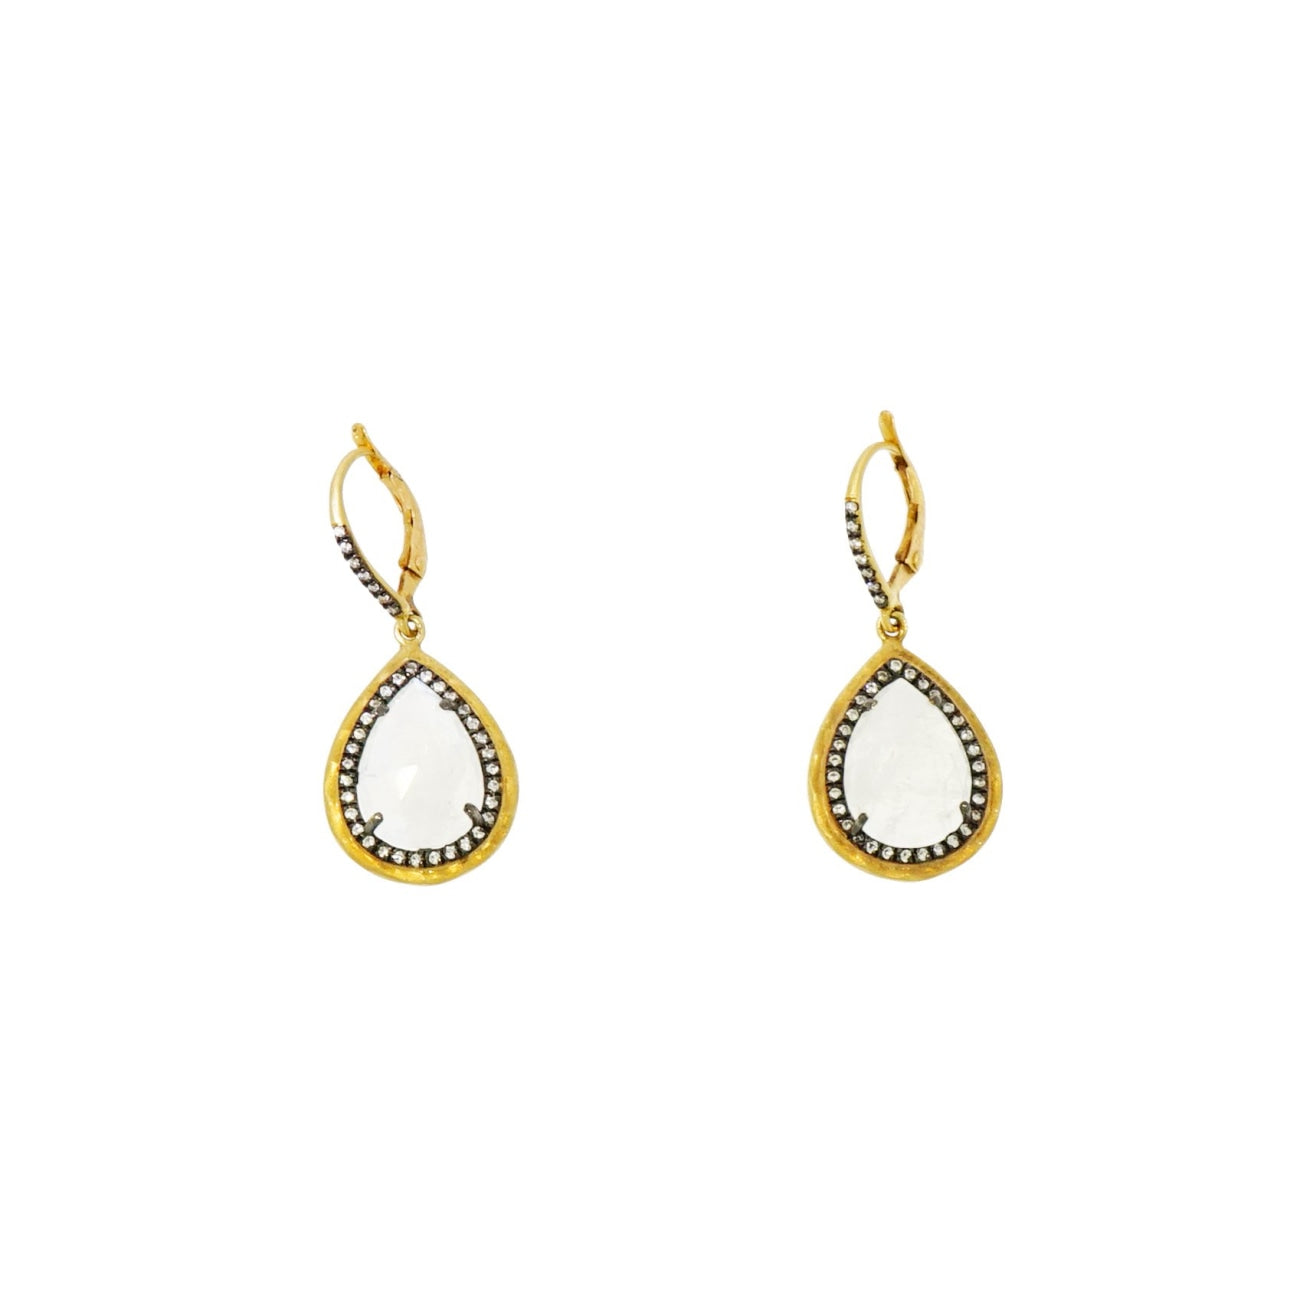 Lauren K Jewelry - Pear shaped Moonstone Drop Earrings | Manfredi Jewels